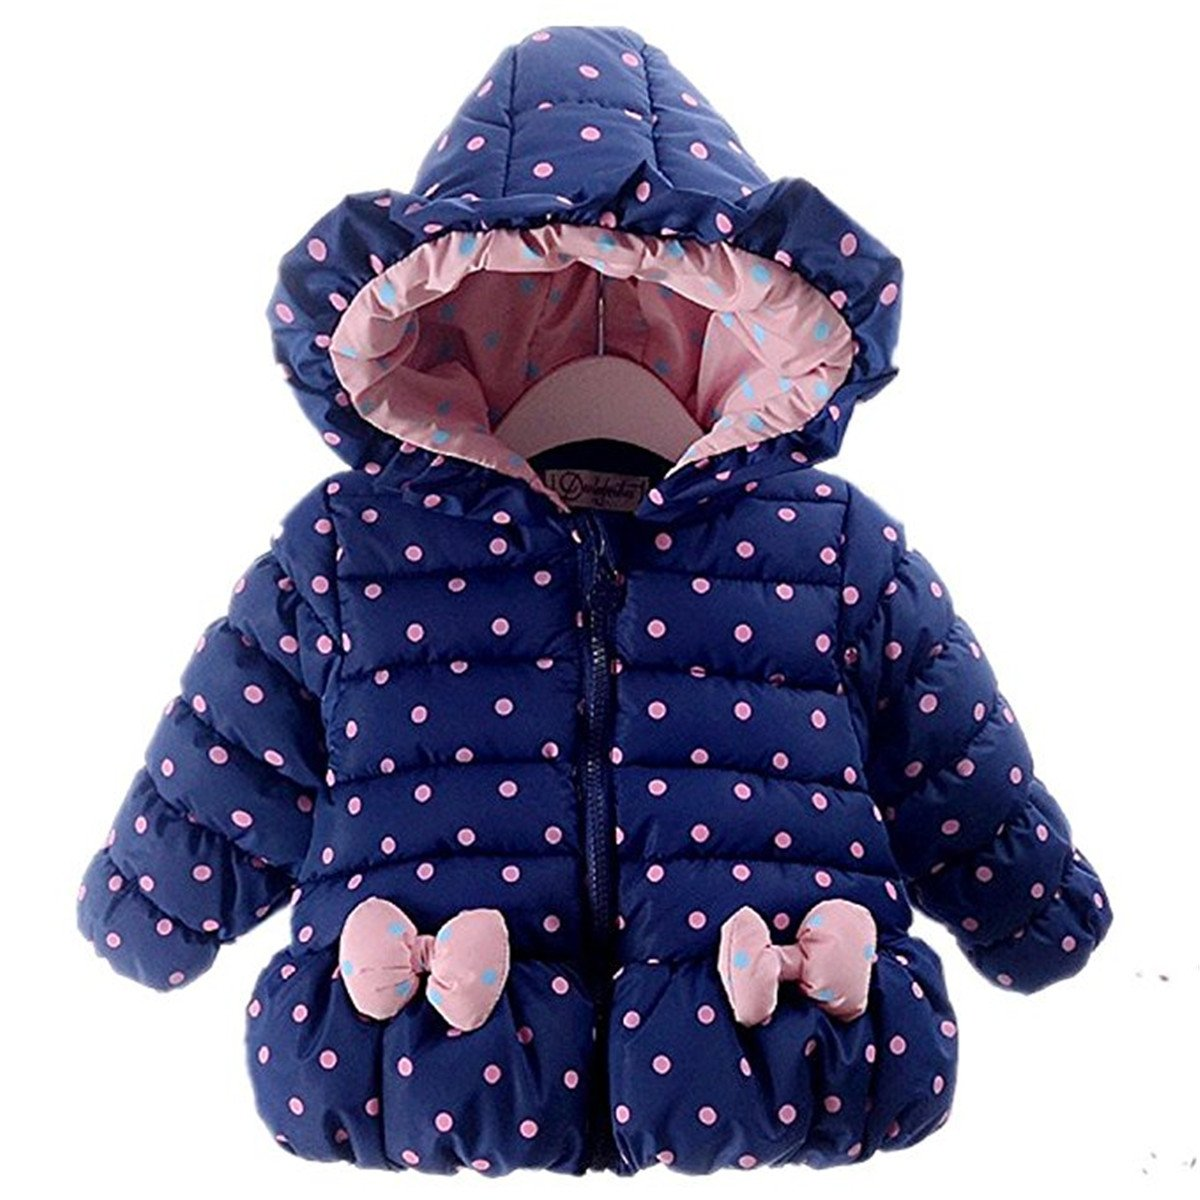 REWANGOING Little Girls Bowknot Dot Hoodie Winter Warm Jacket Outwear Coat VLOKCOAT191